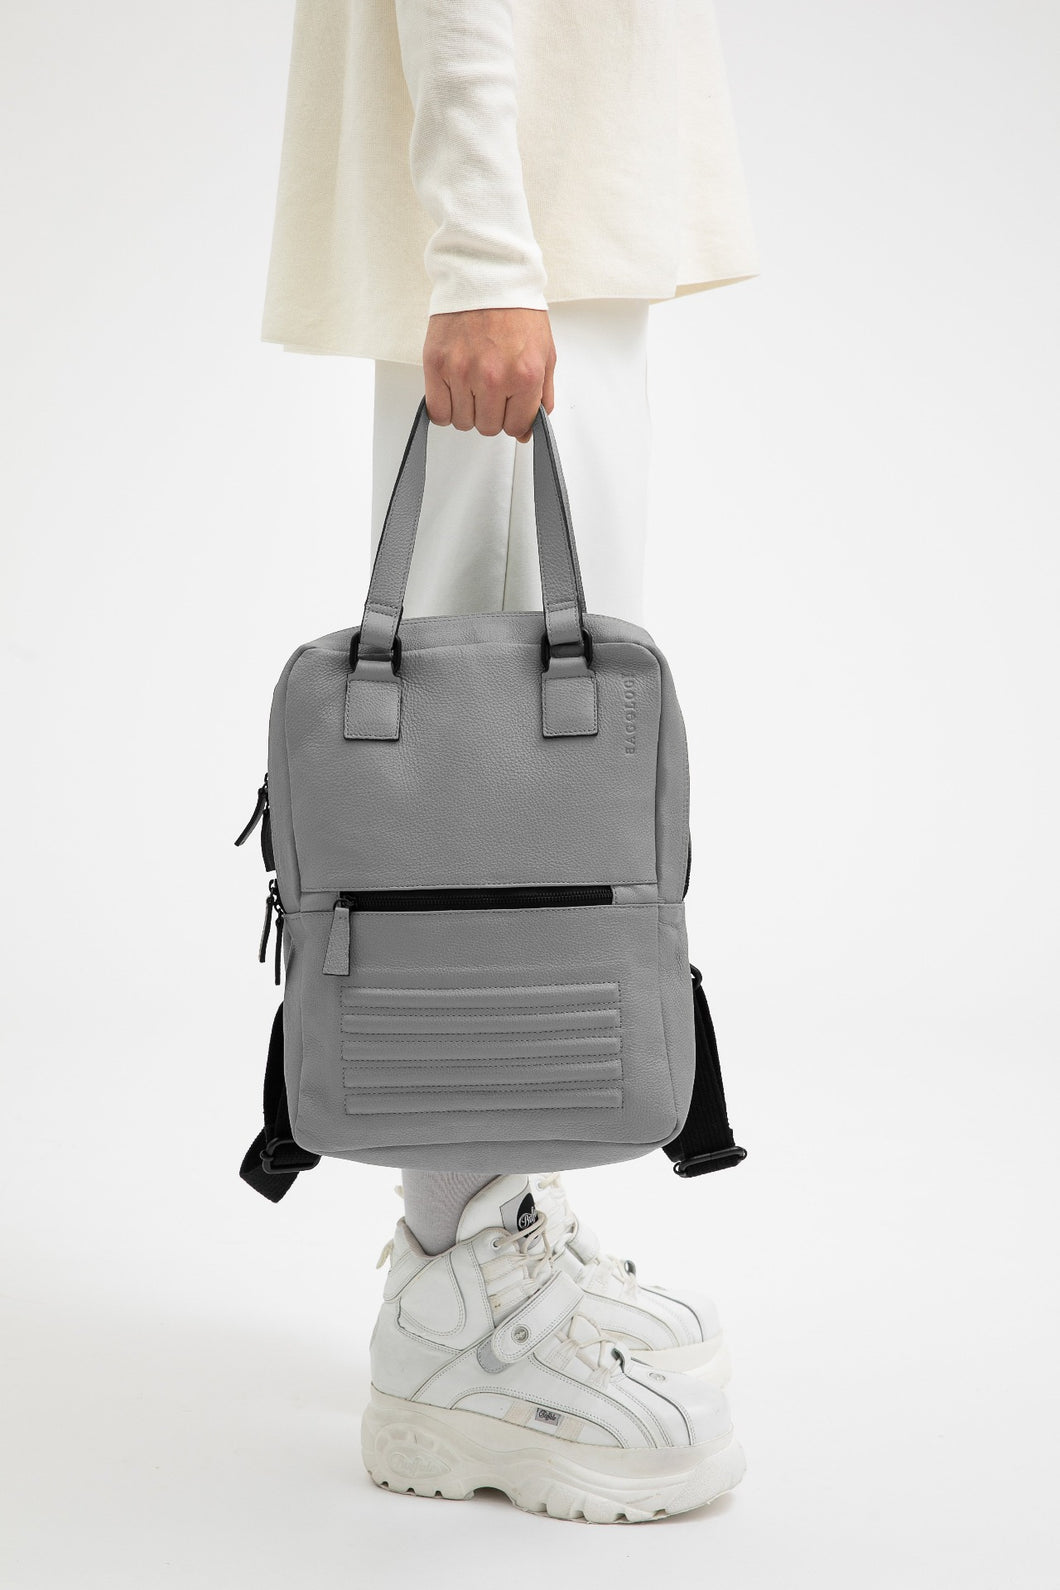 Holborn light grey leather two in one unisex backpack